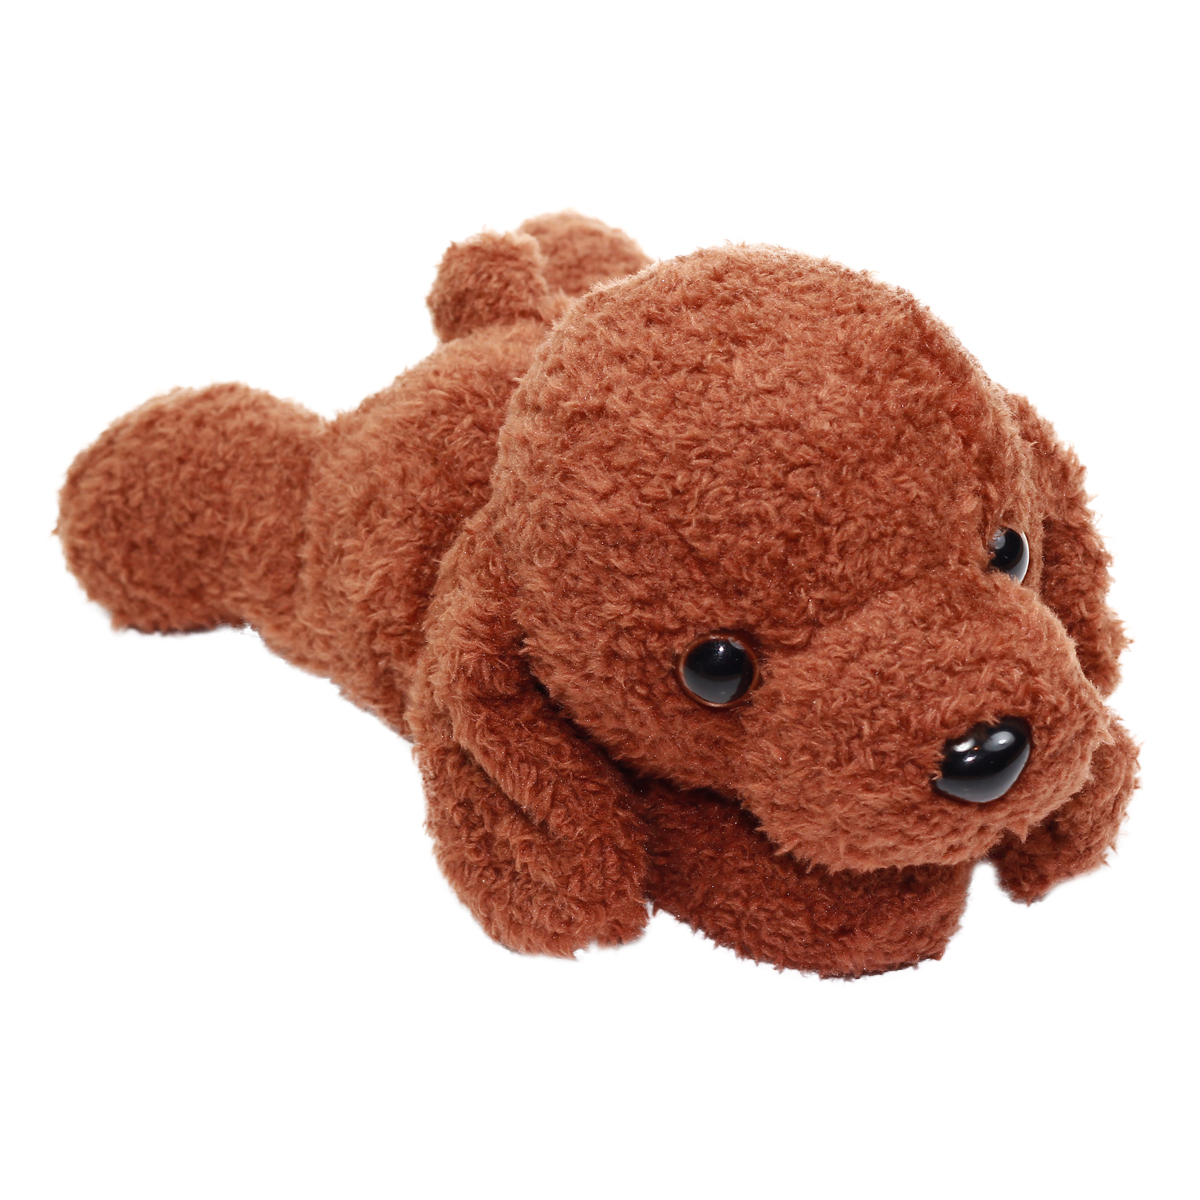 Kawaii Friends Dog Collection Brown Poodle Plush 9 Inches